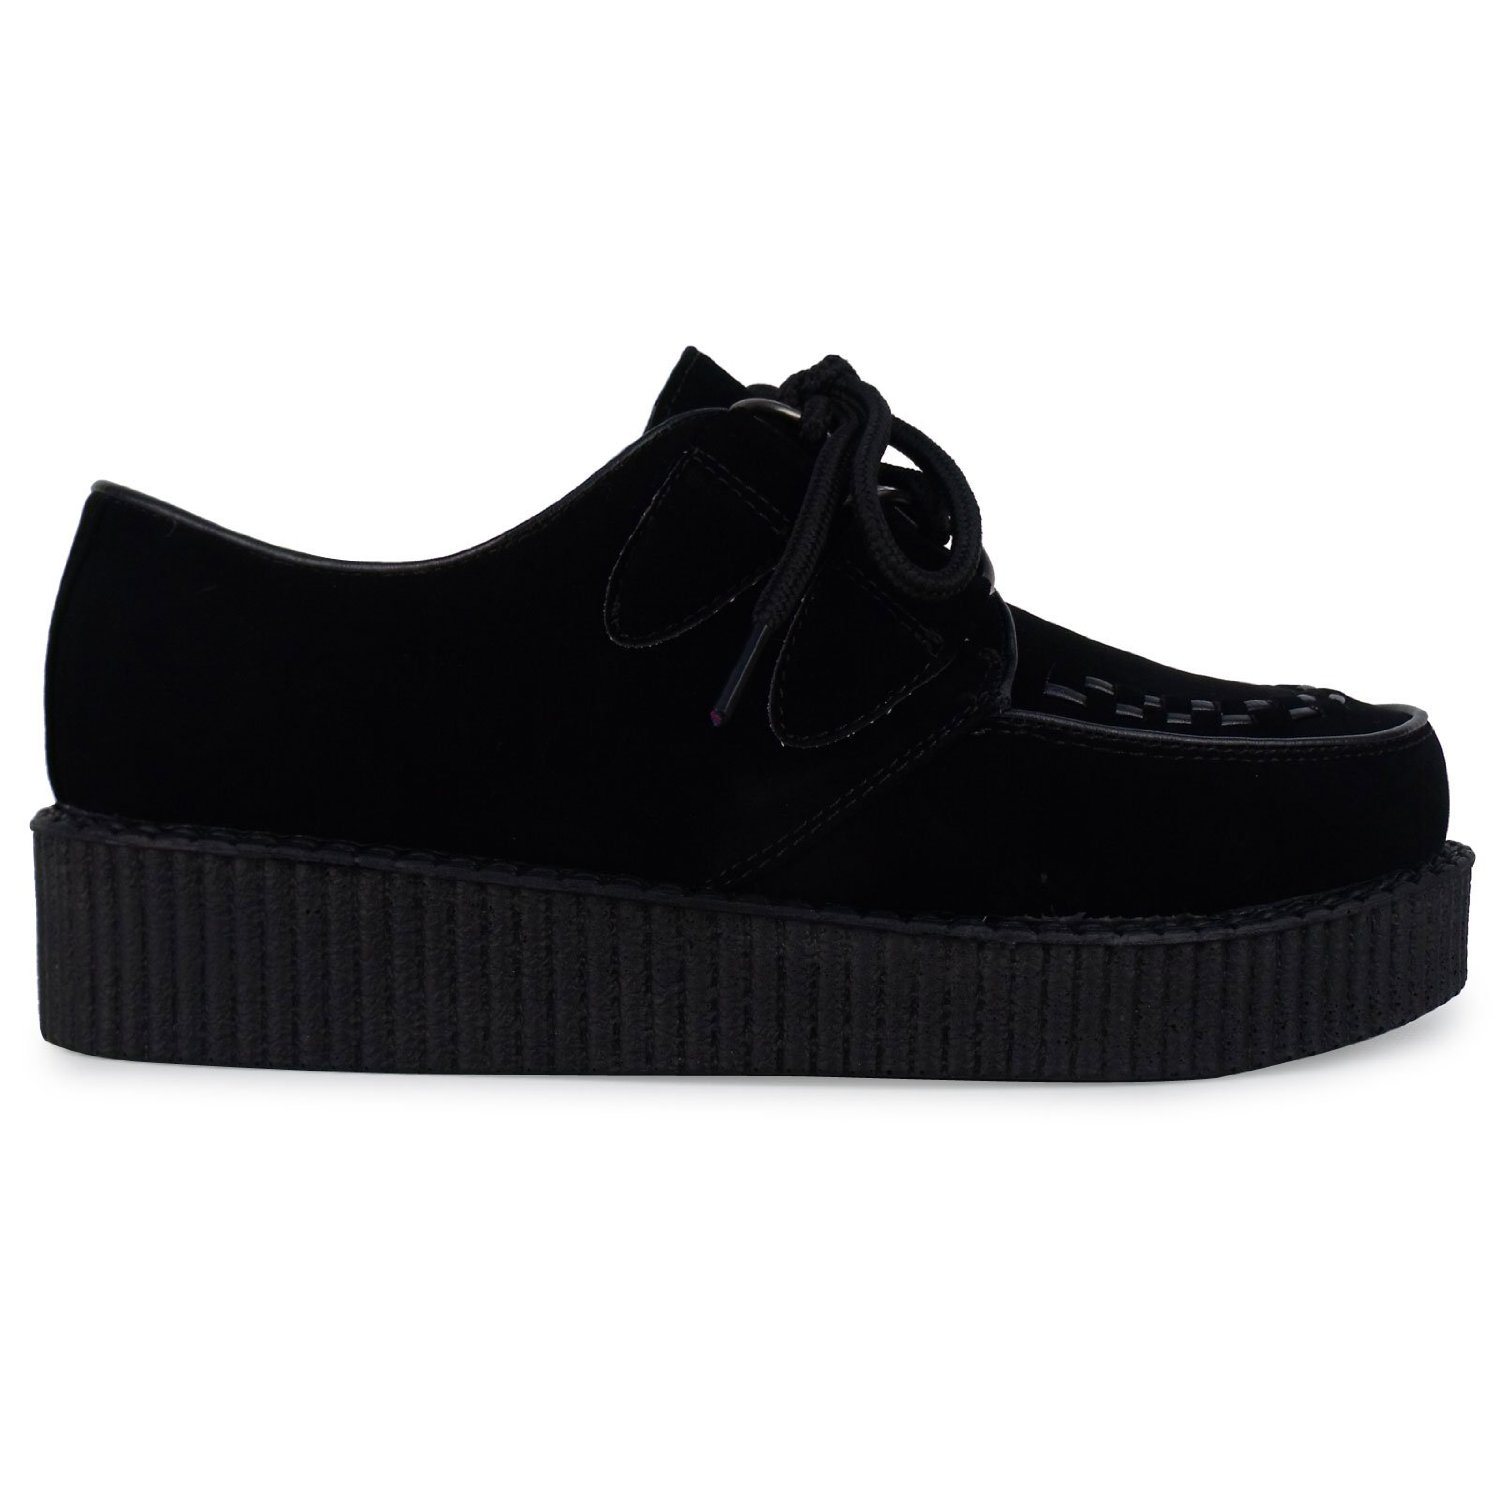 Creepers shoes for men are the ultimate in multi-functionality, able to be worn just about literally everywhere. Plain black creepers shoes with just a little distinctive stitching are unique without calling too much attention to themselves, and excellent for professional settings.